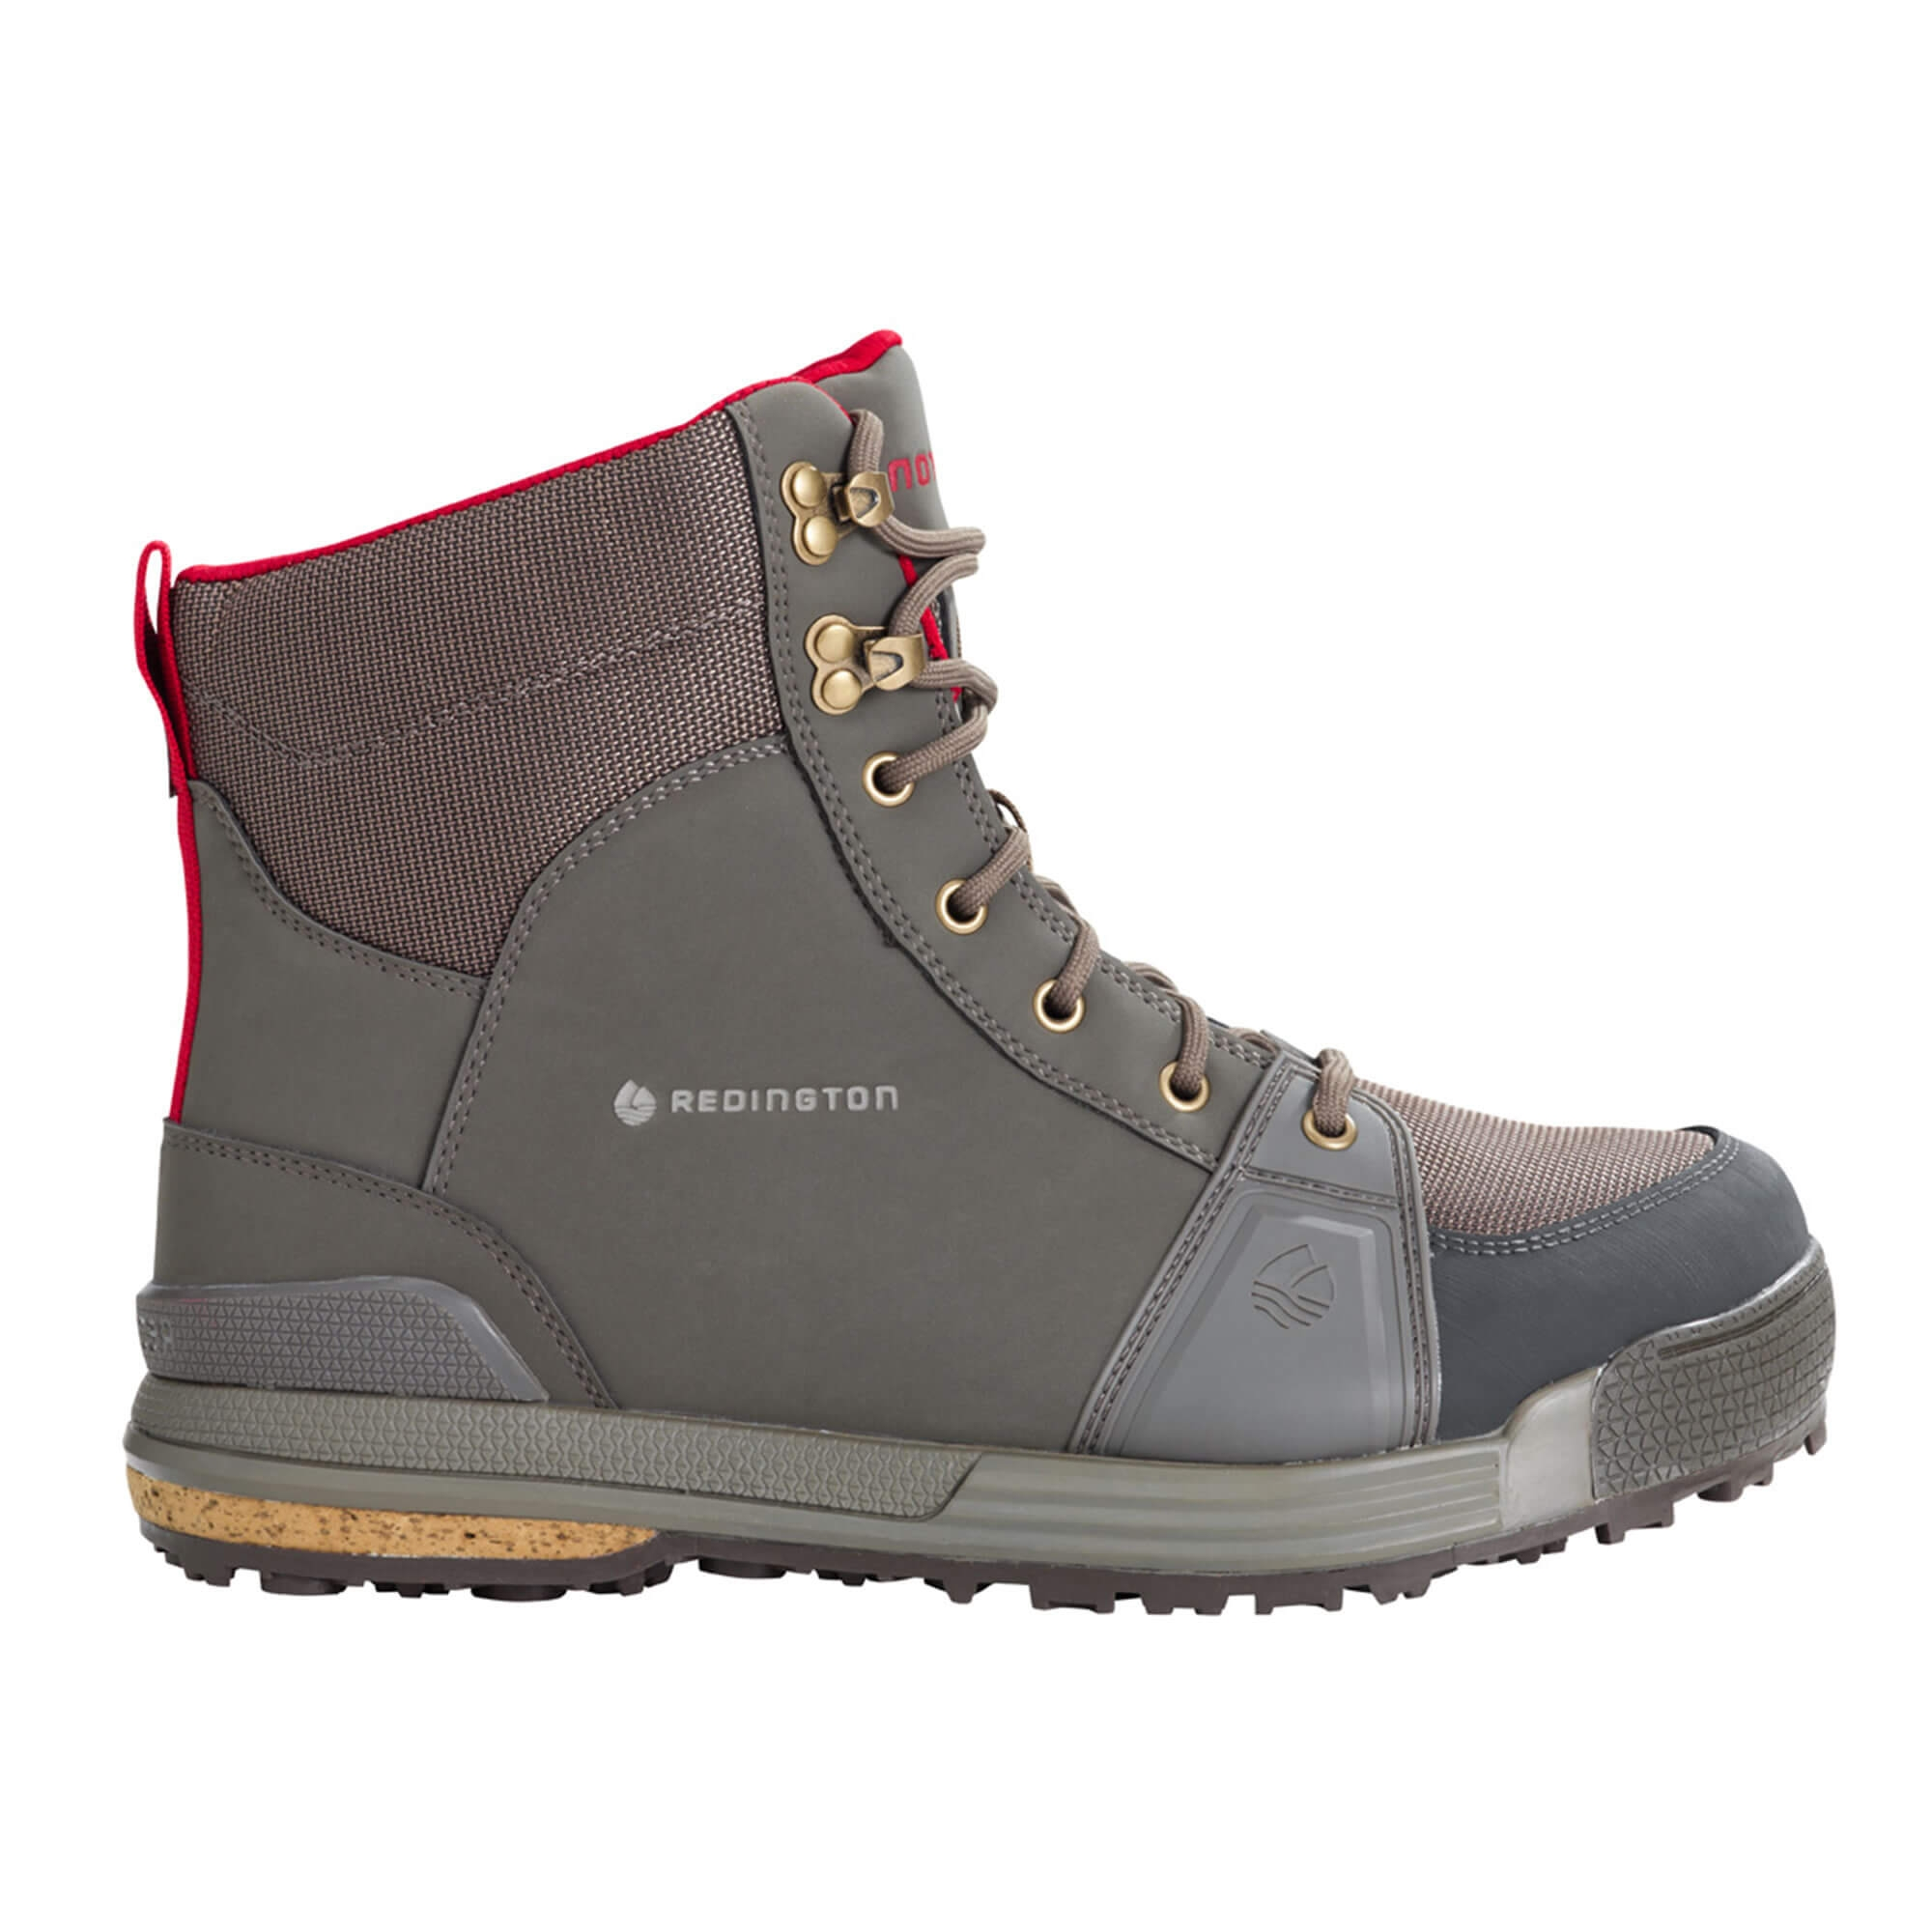 PROWLER BOOT Sticky Walnut Rubber